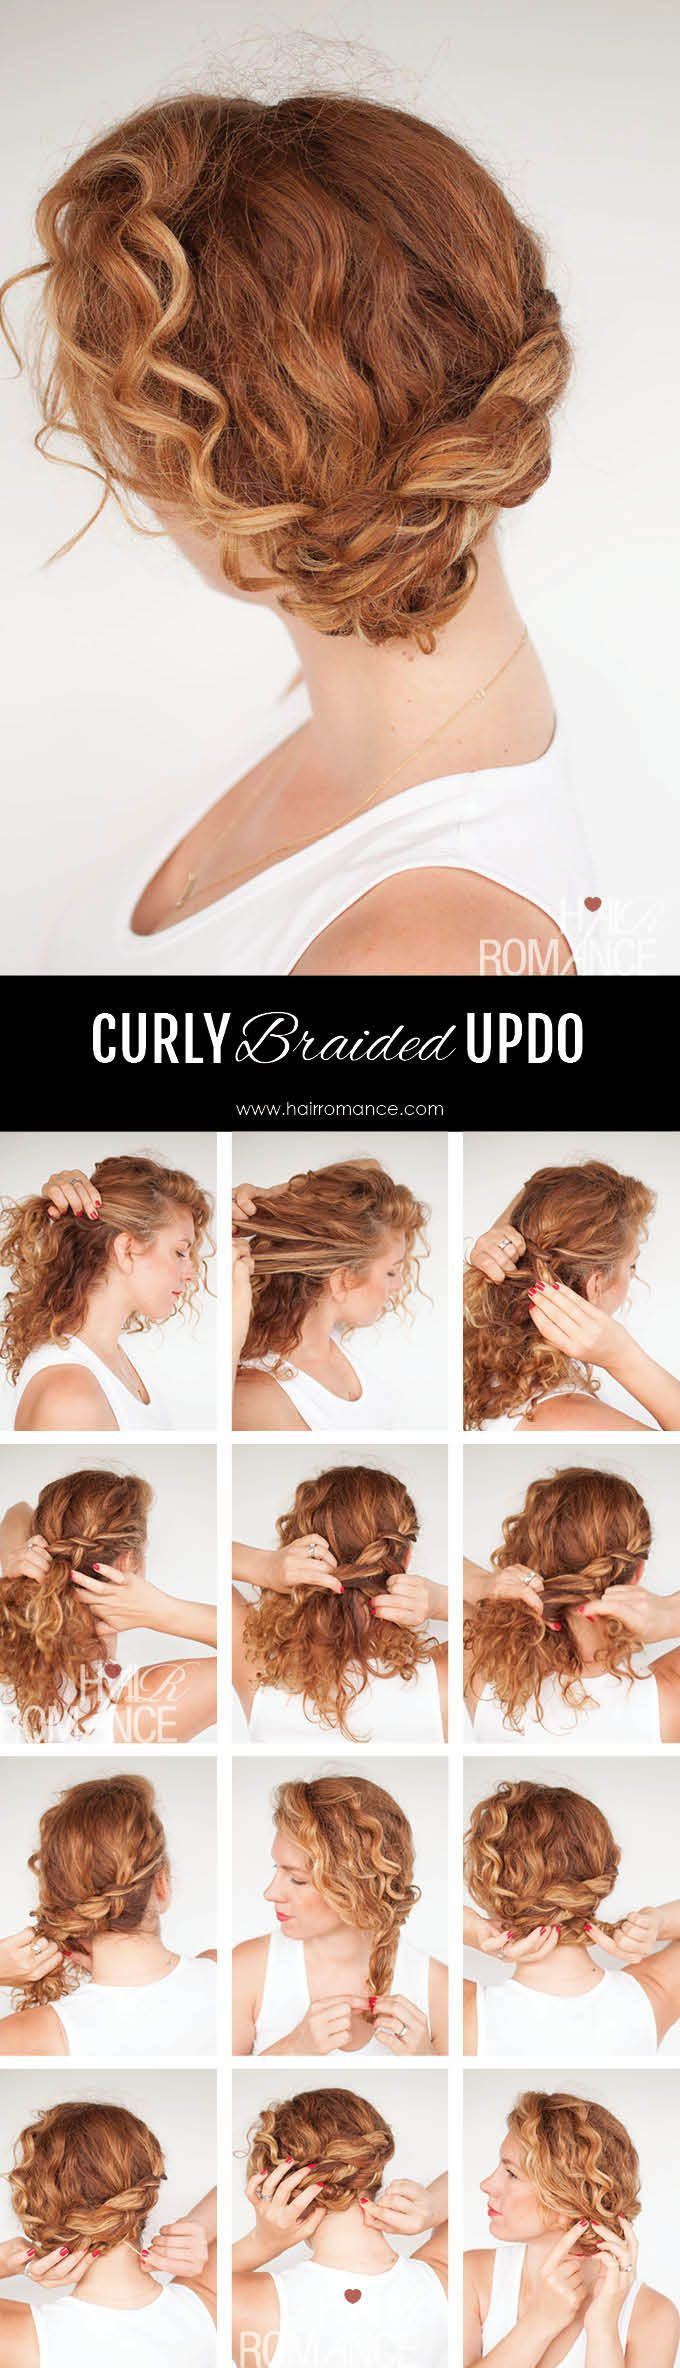 best 25+ curly braided hairstyles ideas on pinterest | prom hair